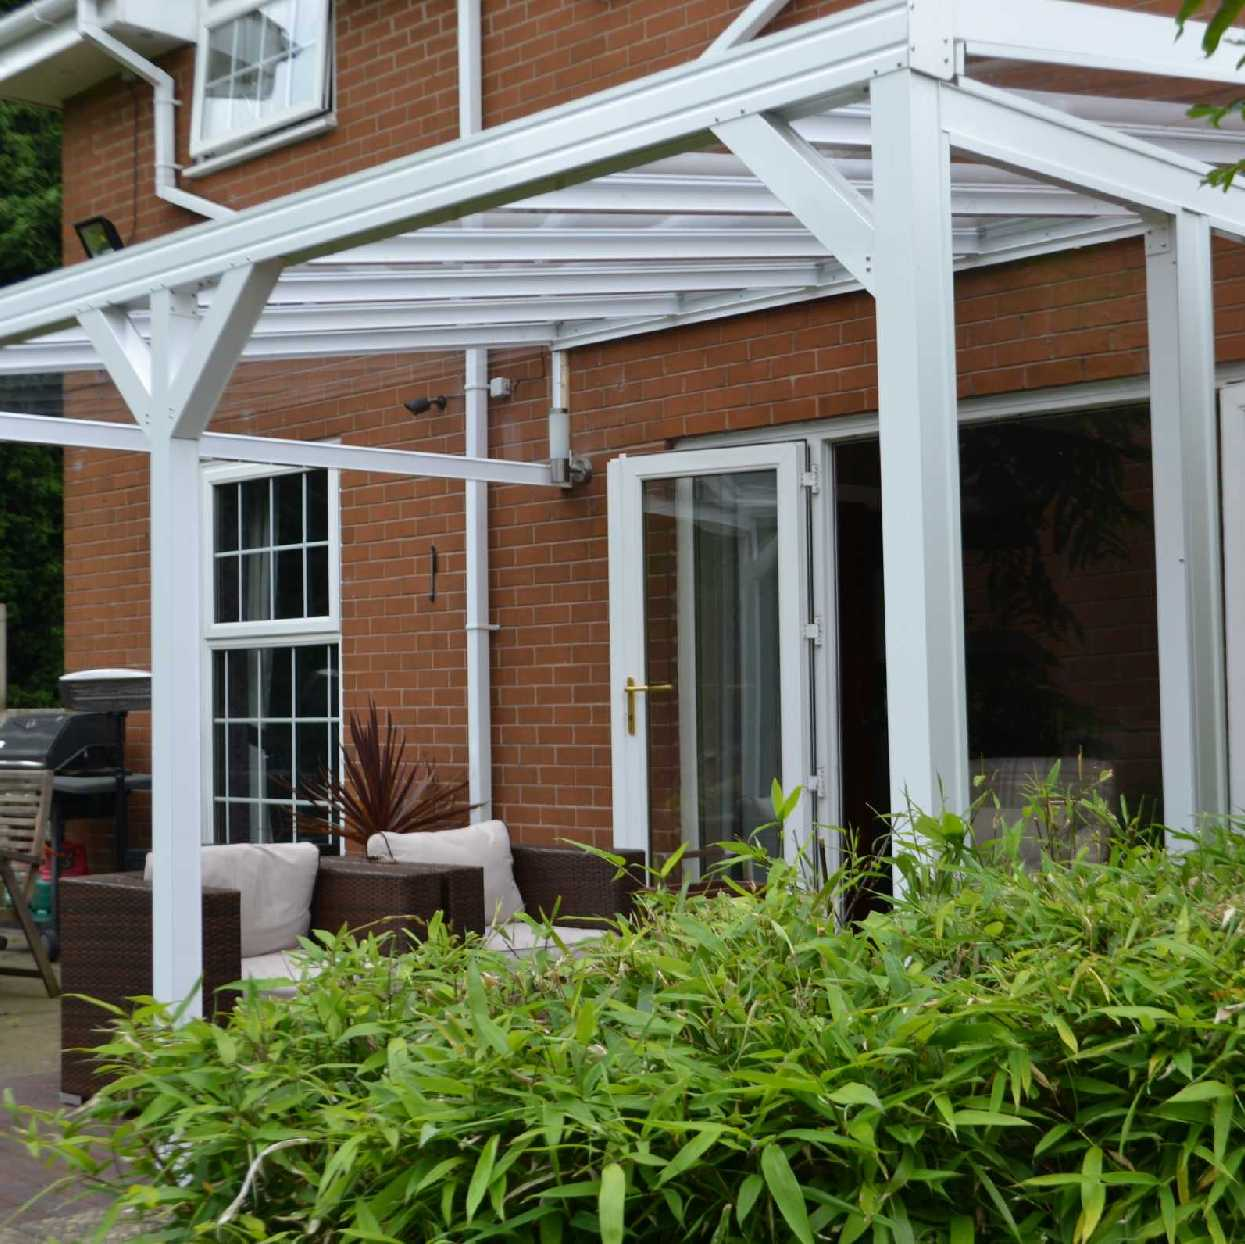 Omega Smart White Lean-To Canopy with 6mm Glass Clear Plate Polycarbonate Glazing - 4.2m (W) x 3.0m (P), (3) Supporting Posts from Omega Build